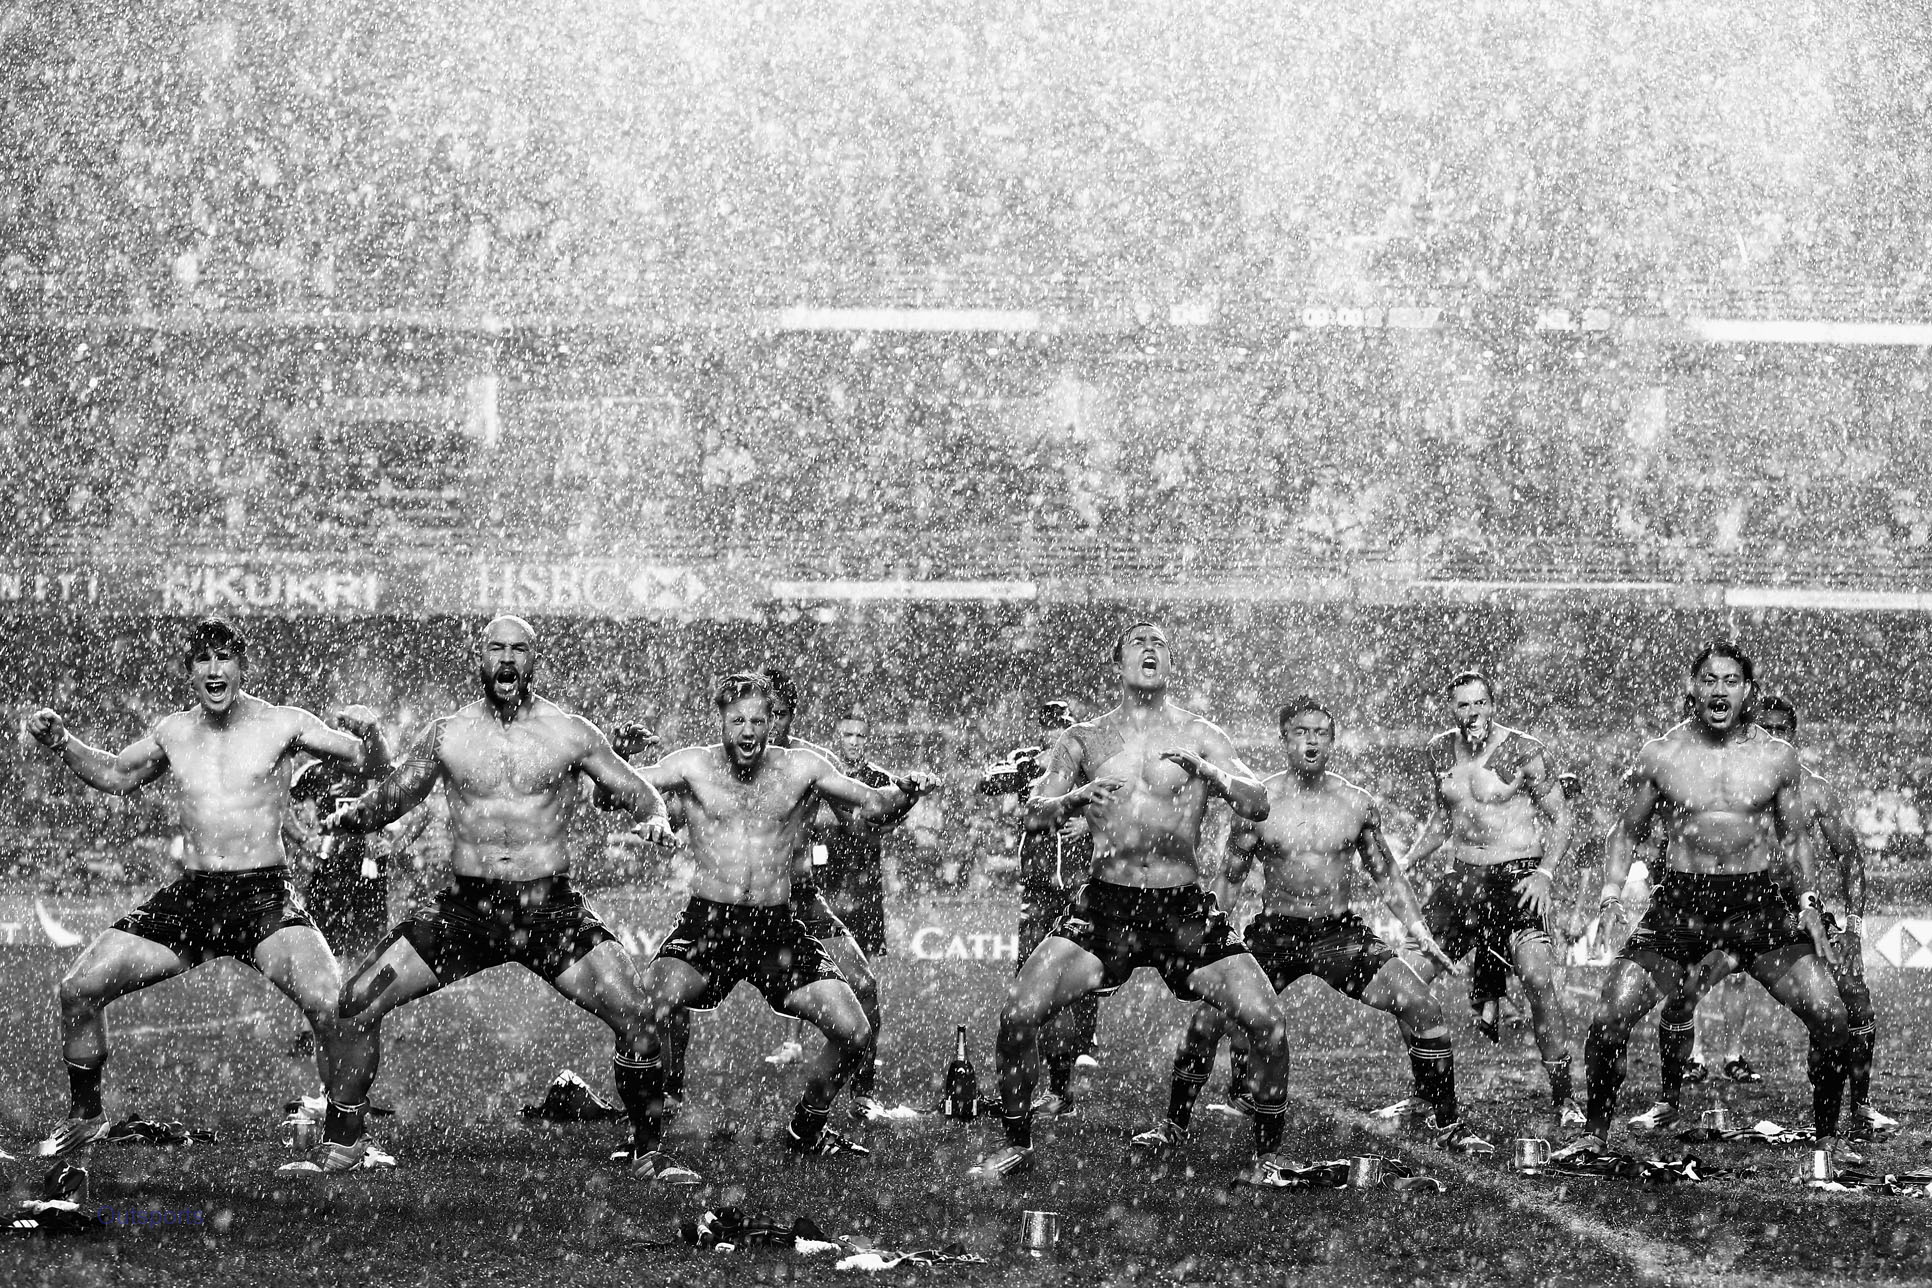 Awesome Photos Of New Zealand Rugby Players Doing Shirtless Haka In